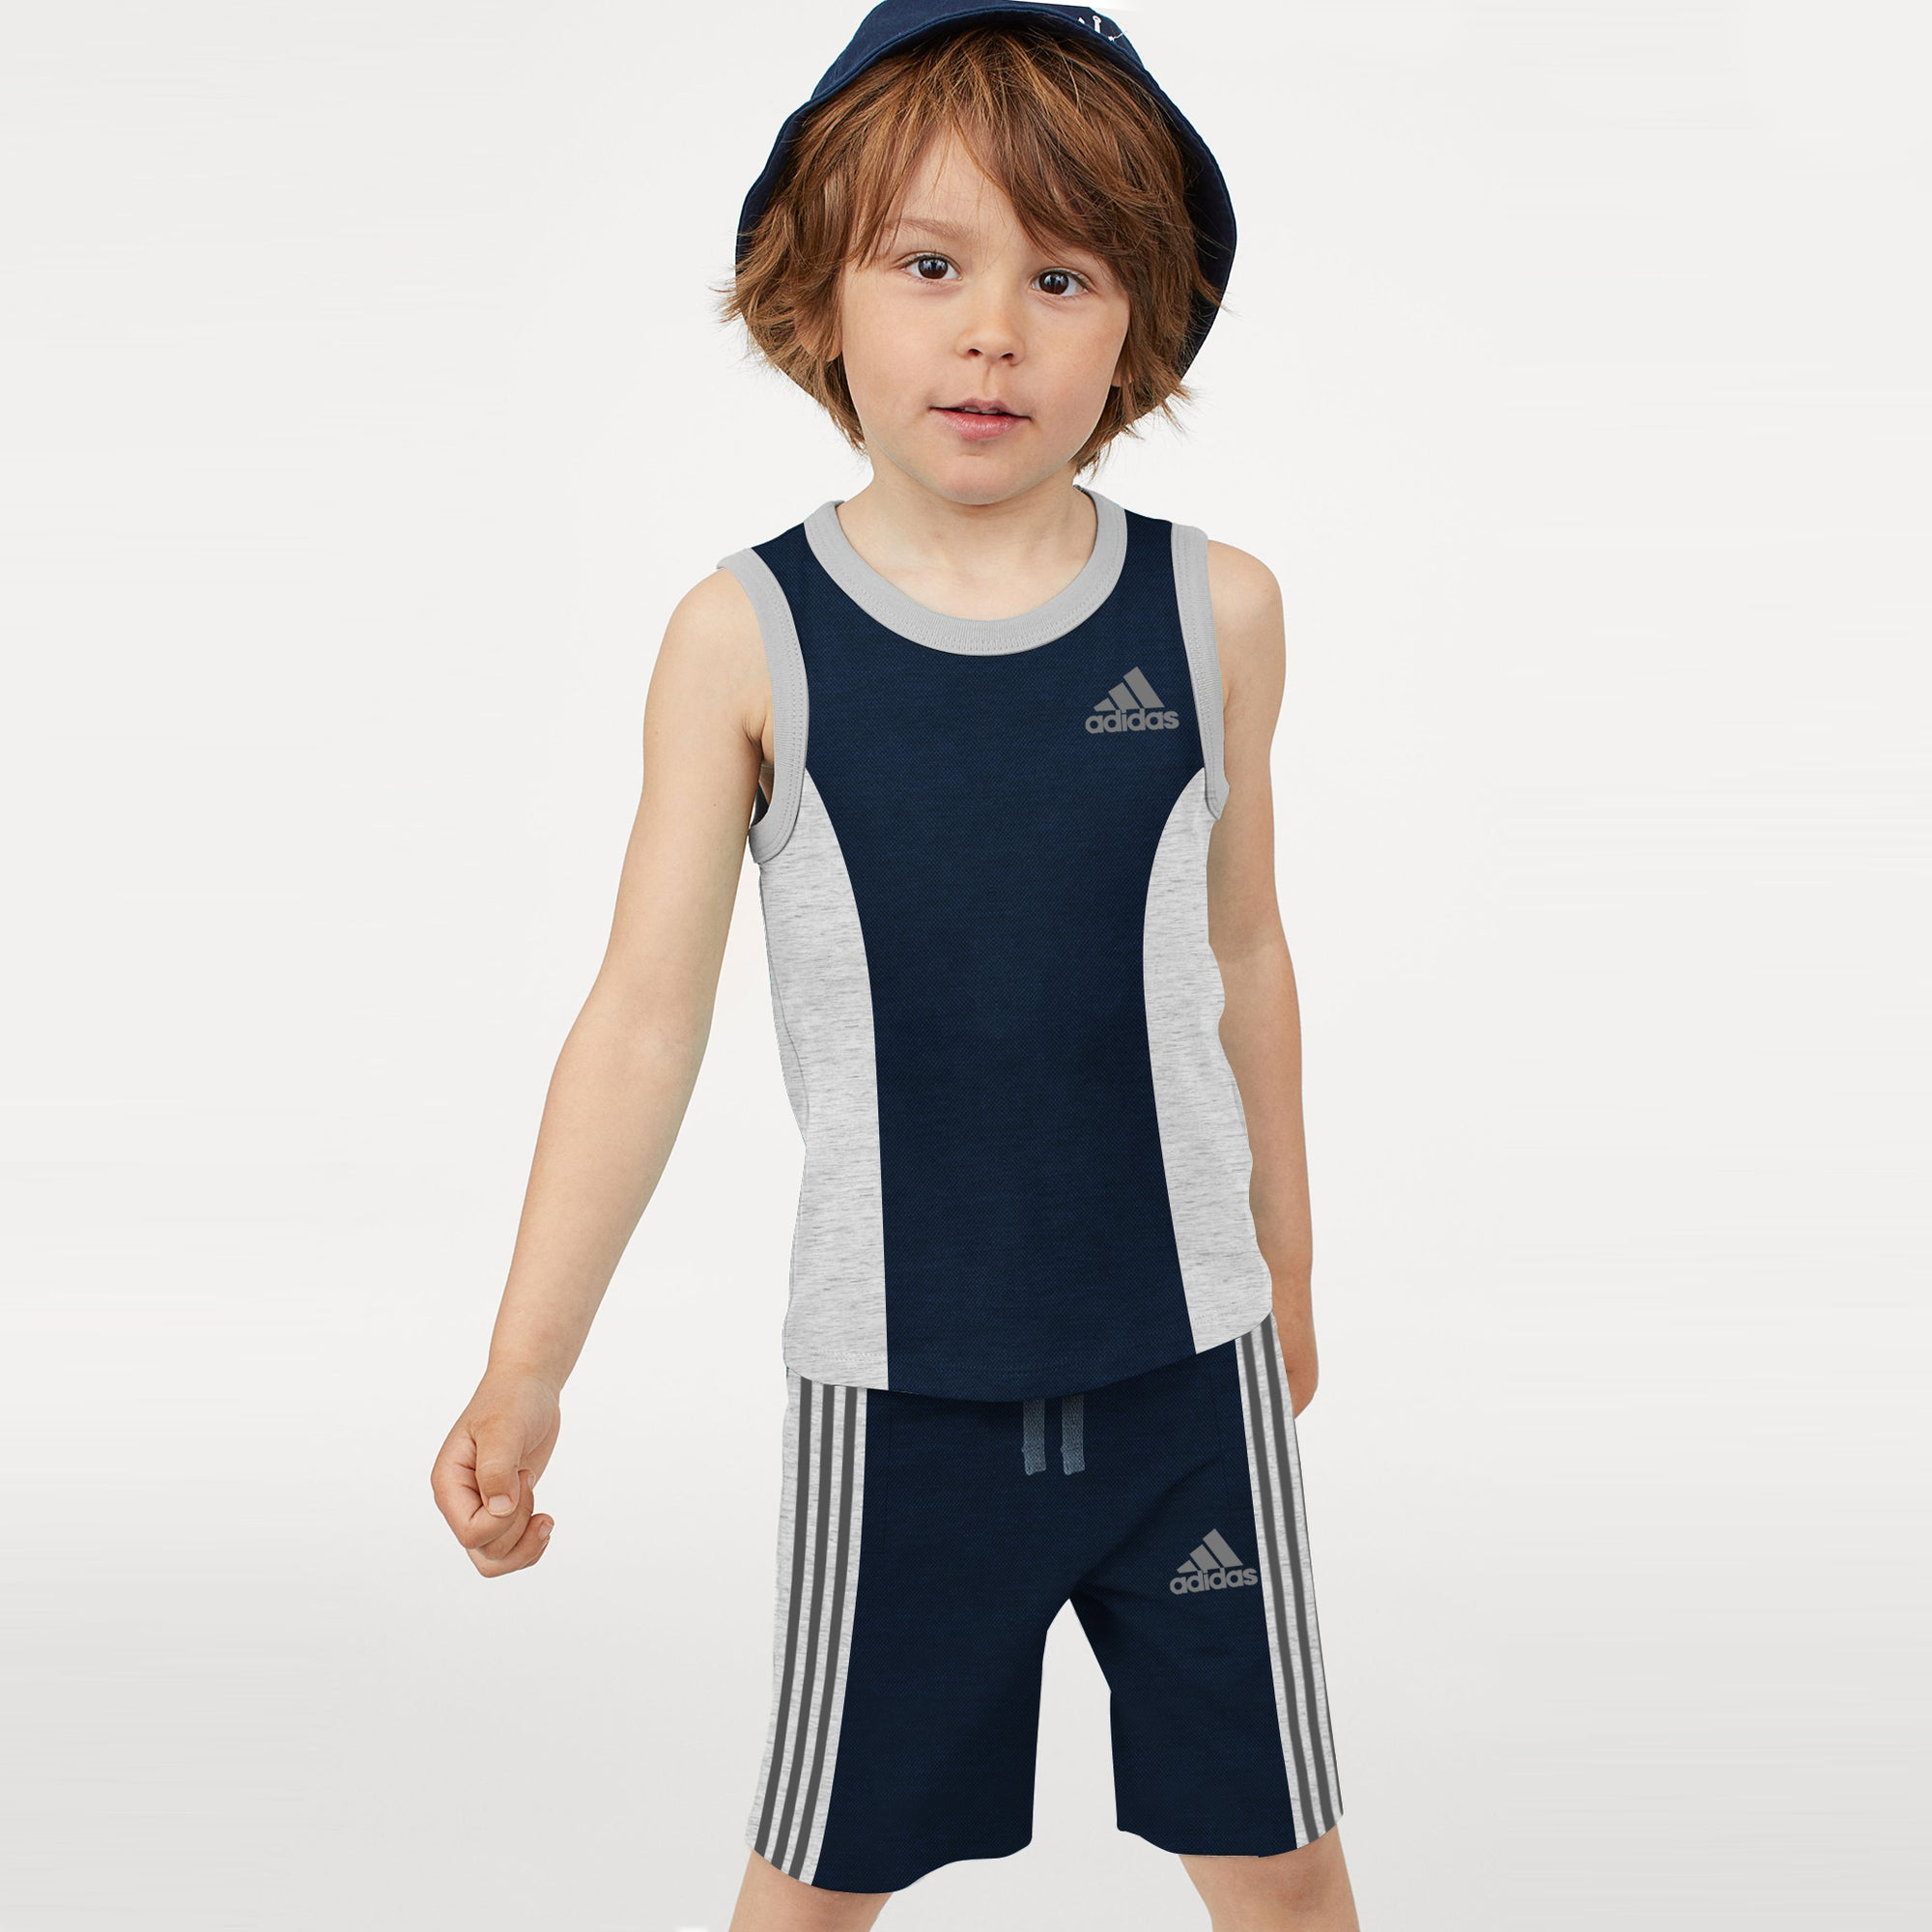 Adidas P.Q & Single Jersey Sport Suit For Kids-Navy & Grey Melange-BE8940